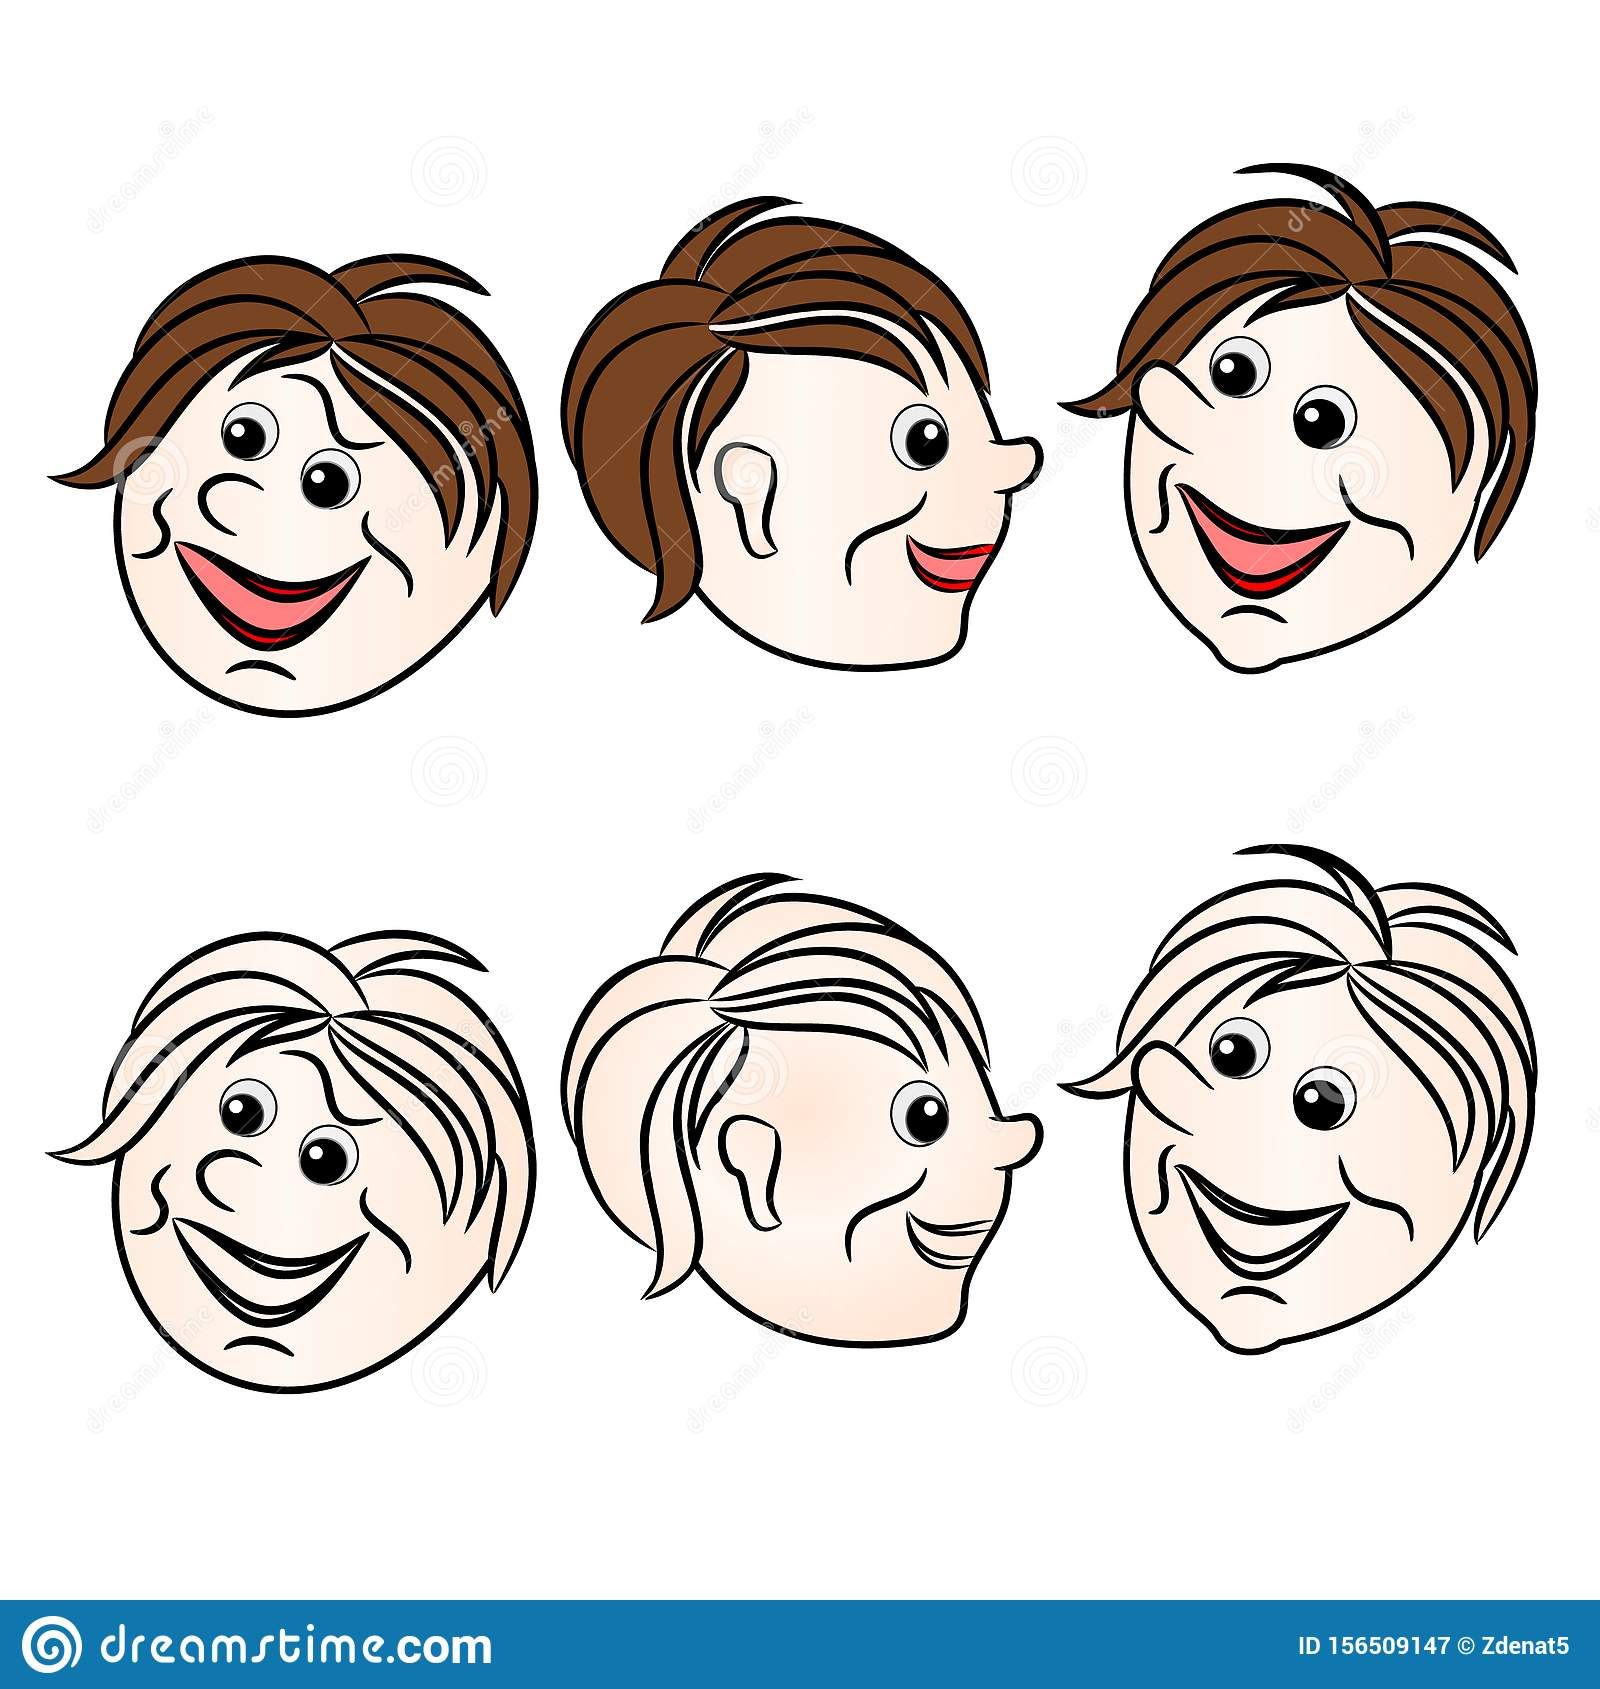 Faces character boys smiling natural and outline set first on a white background vintage vector illustration editable